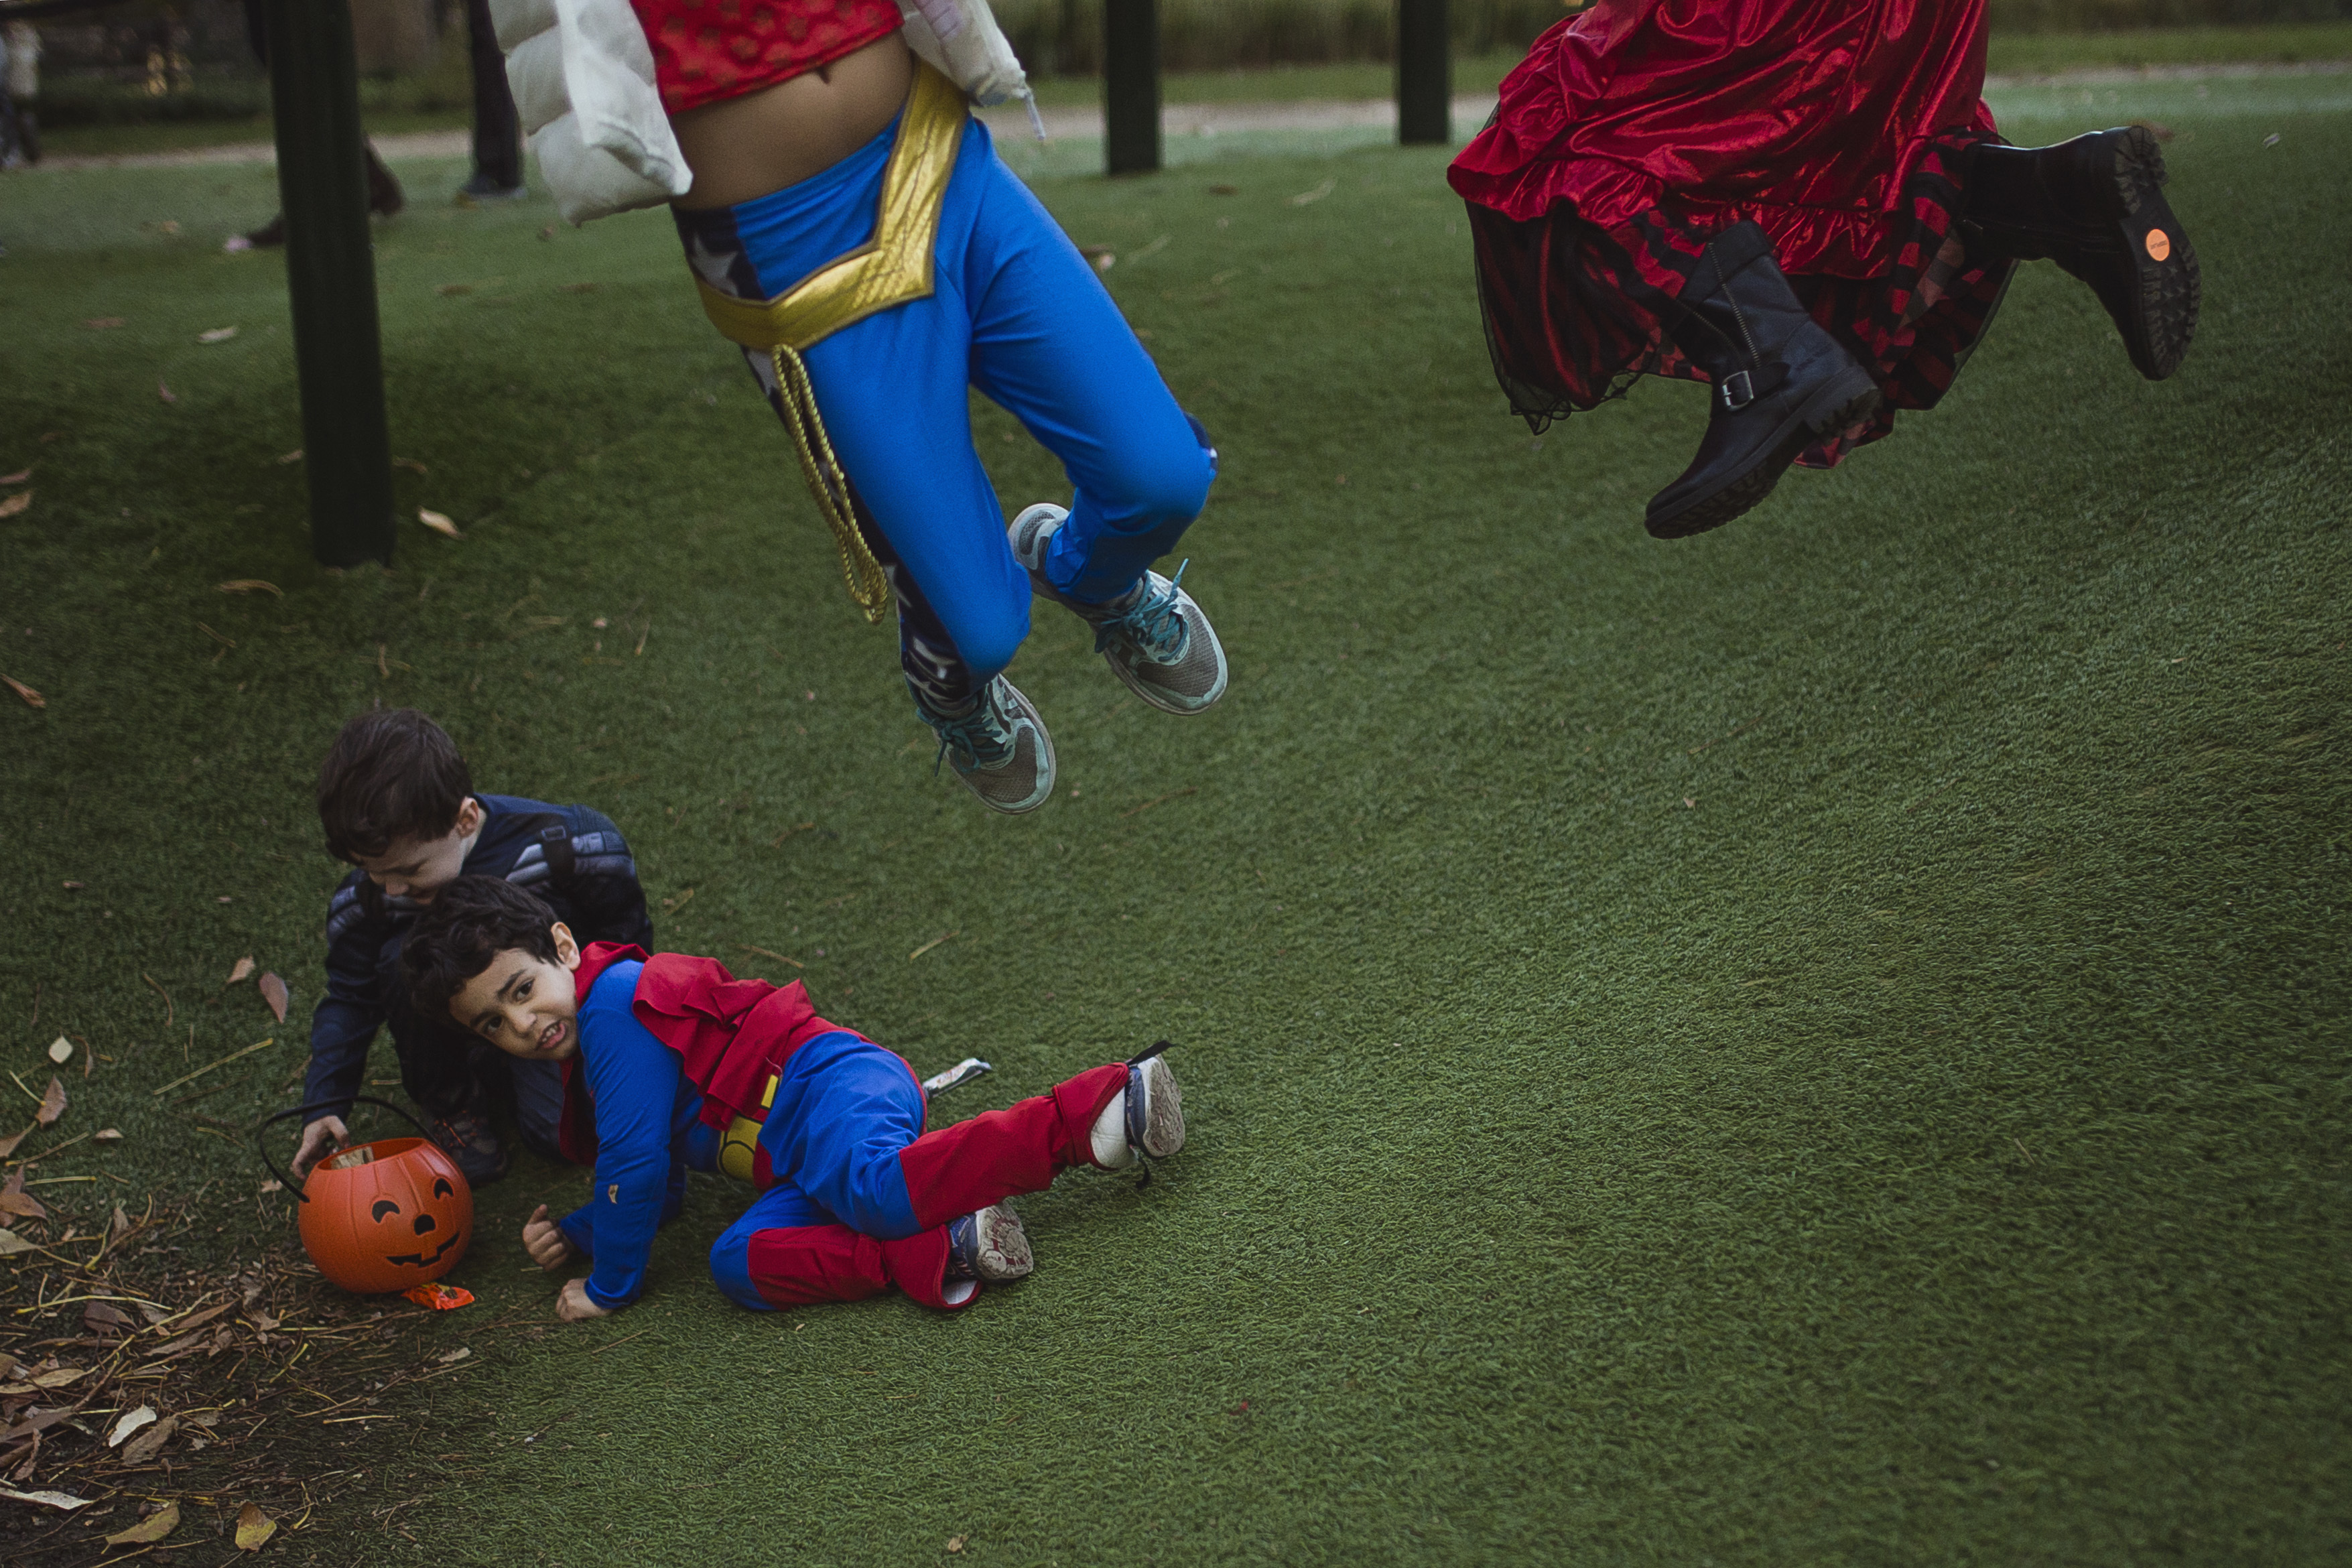 "<div class=""meta image-caption""><div class=""origin-logo origin-image none""><span>none</span></div><span class=""caption-text"">Children wearing costumes play at Washington Square Park before the Greenwich Village Halloween Parade in New York, Monday, Oct. 31, 2016. (AP Photo/Andres Kudacki)</span></div>"